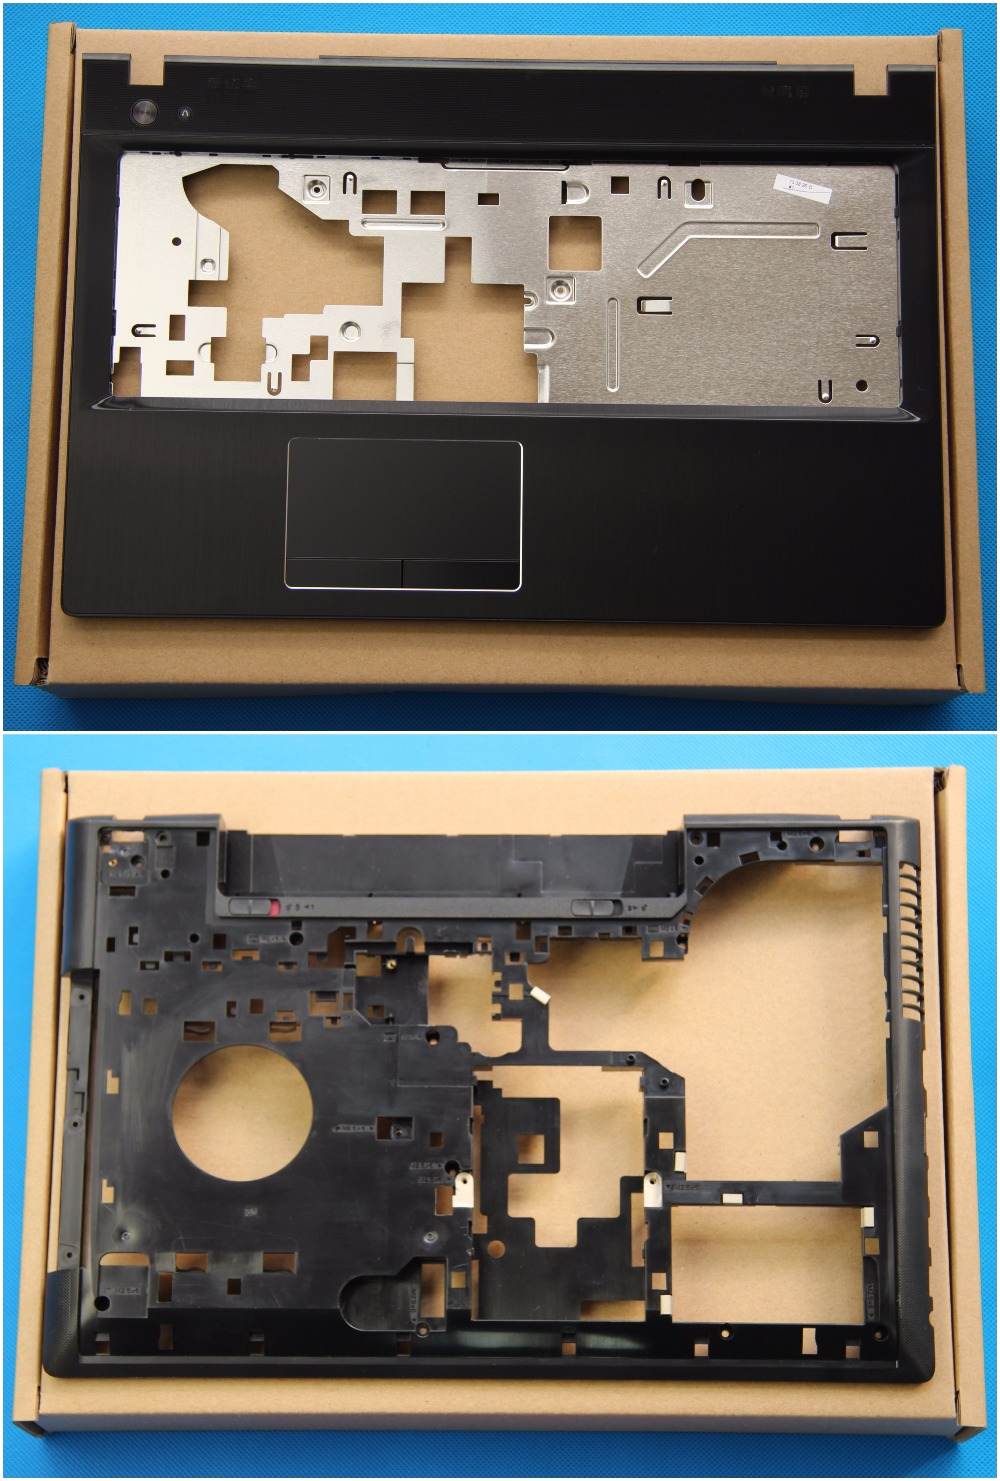 New Original For Lenovo G500 G505 G510 Palmrest Keyboard Bezel + Lower Case Bottom Cover AP0Y0000600 & AP0Y0000700 new original hdd bracket for lenovo g500 g505 g510 series fru 90202693